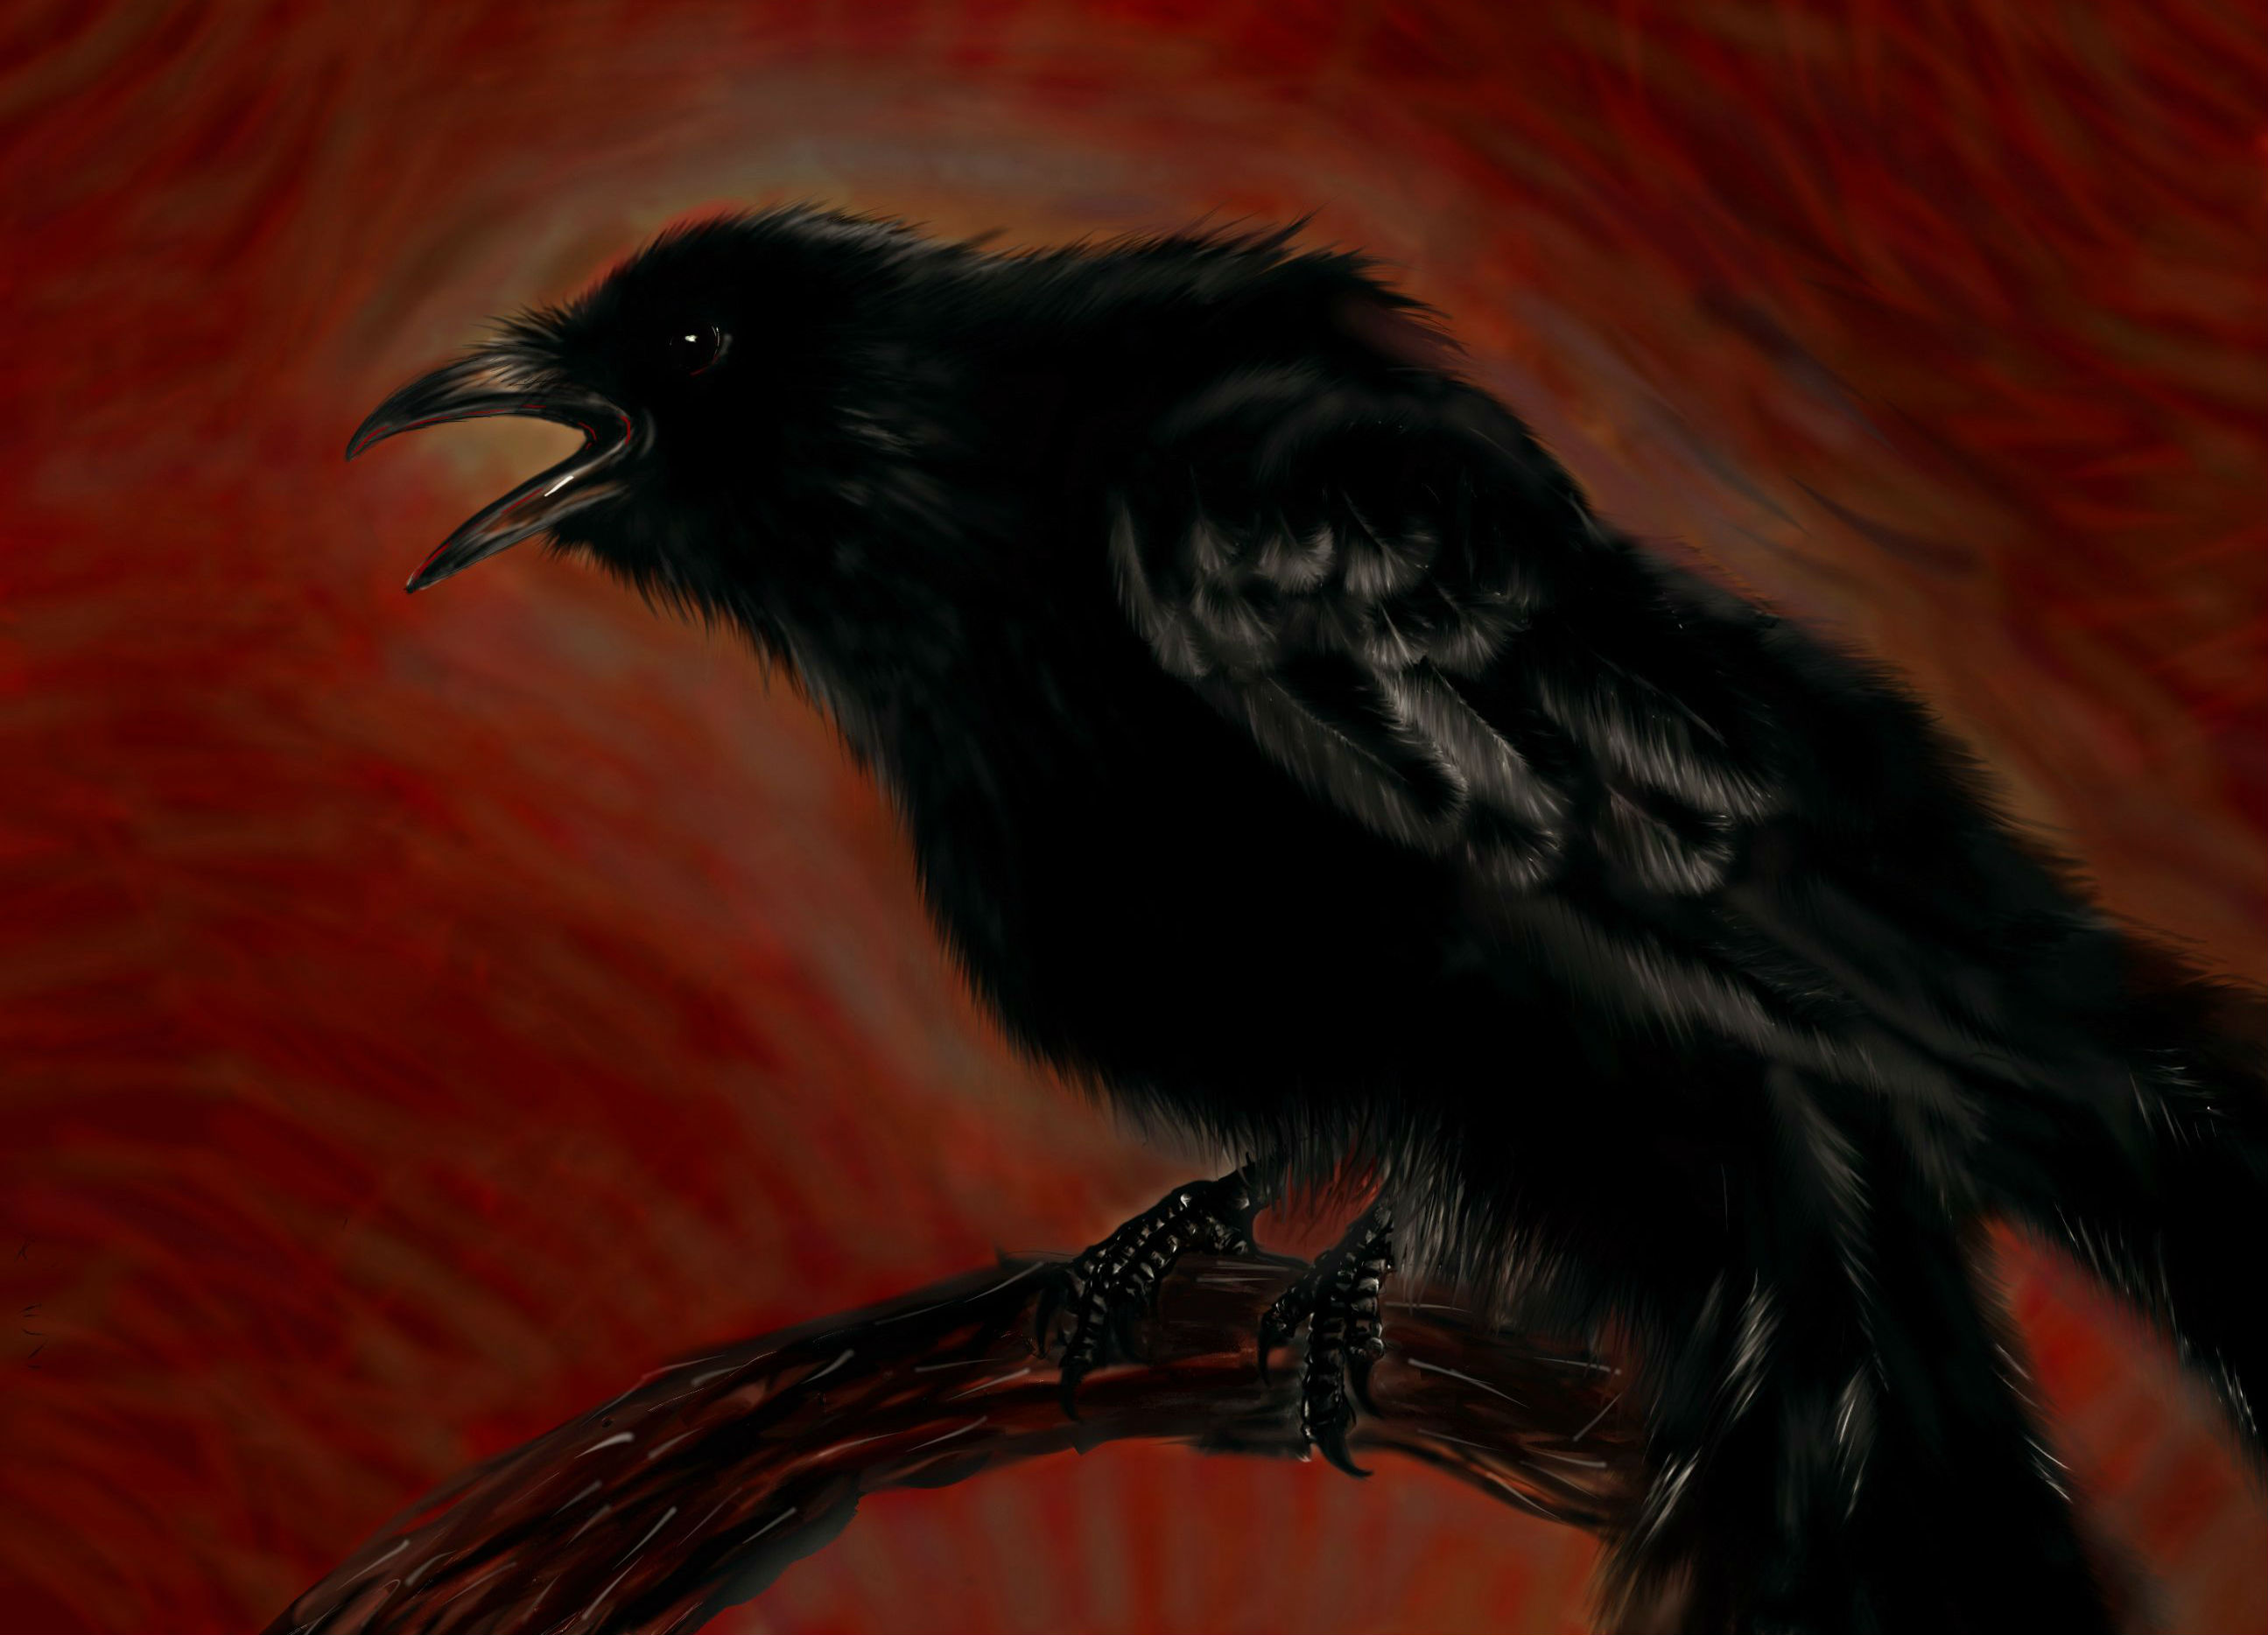 The crow hd wallpaper background image 2591x1868 id - The crow wallpaper ...